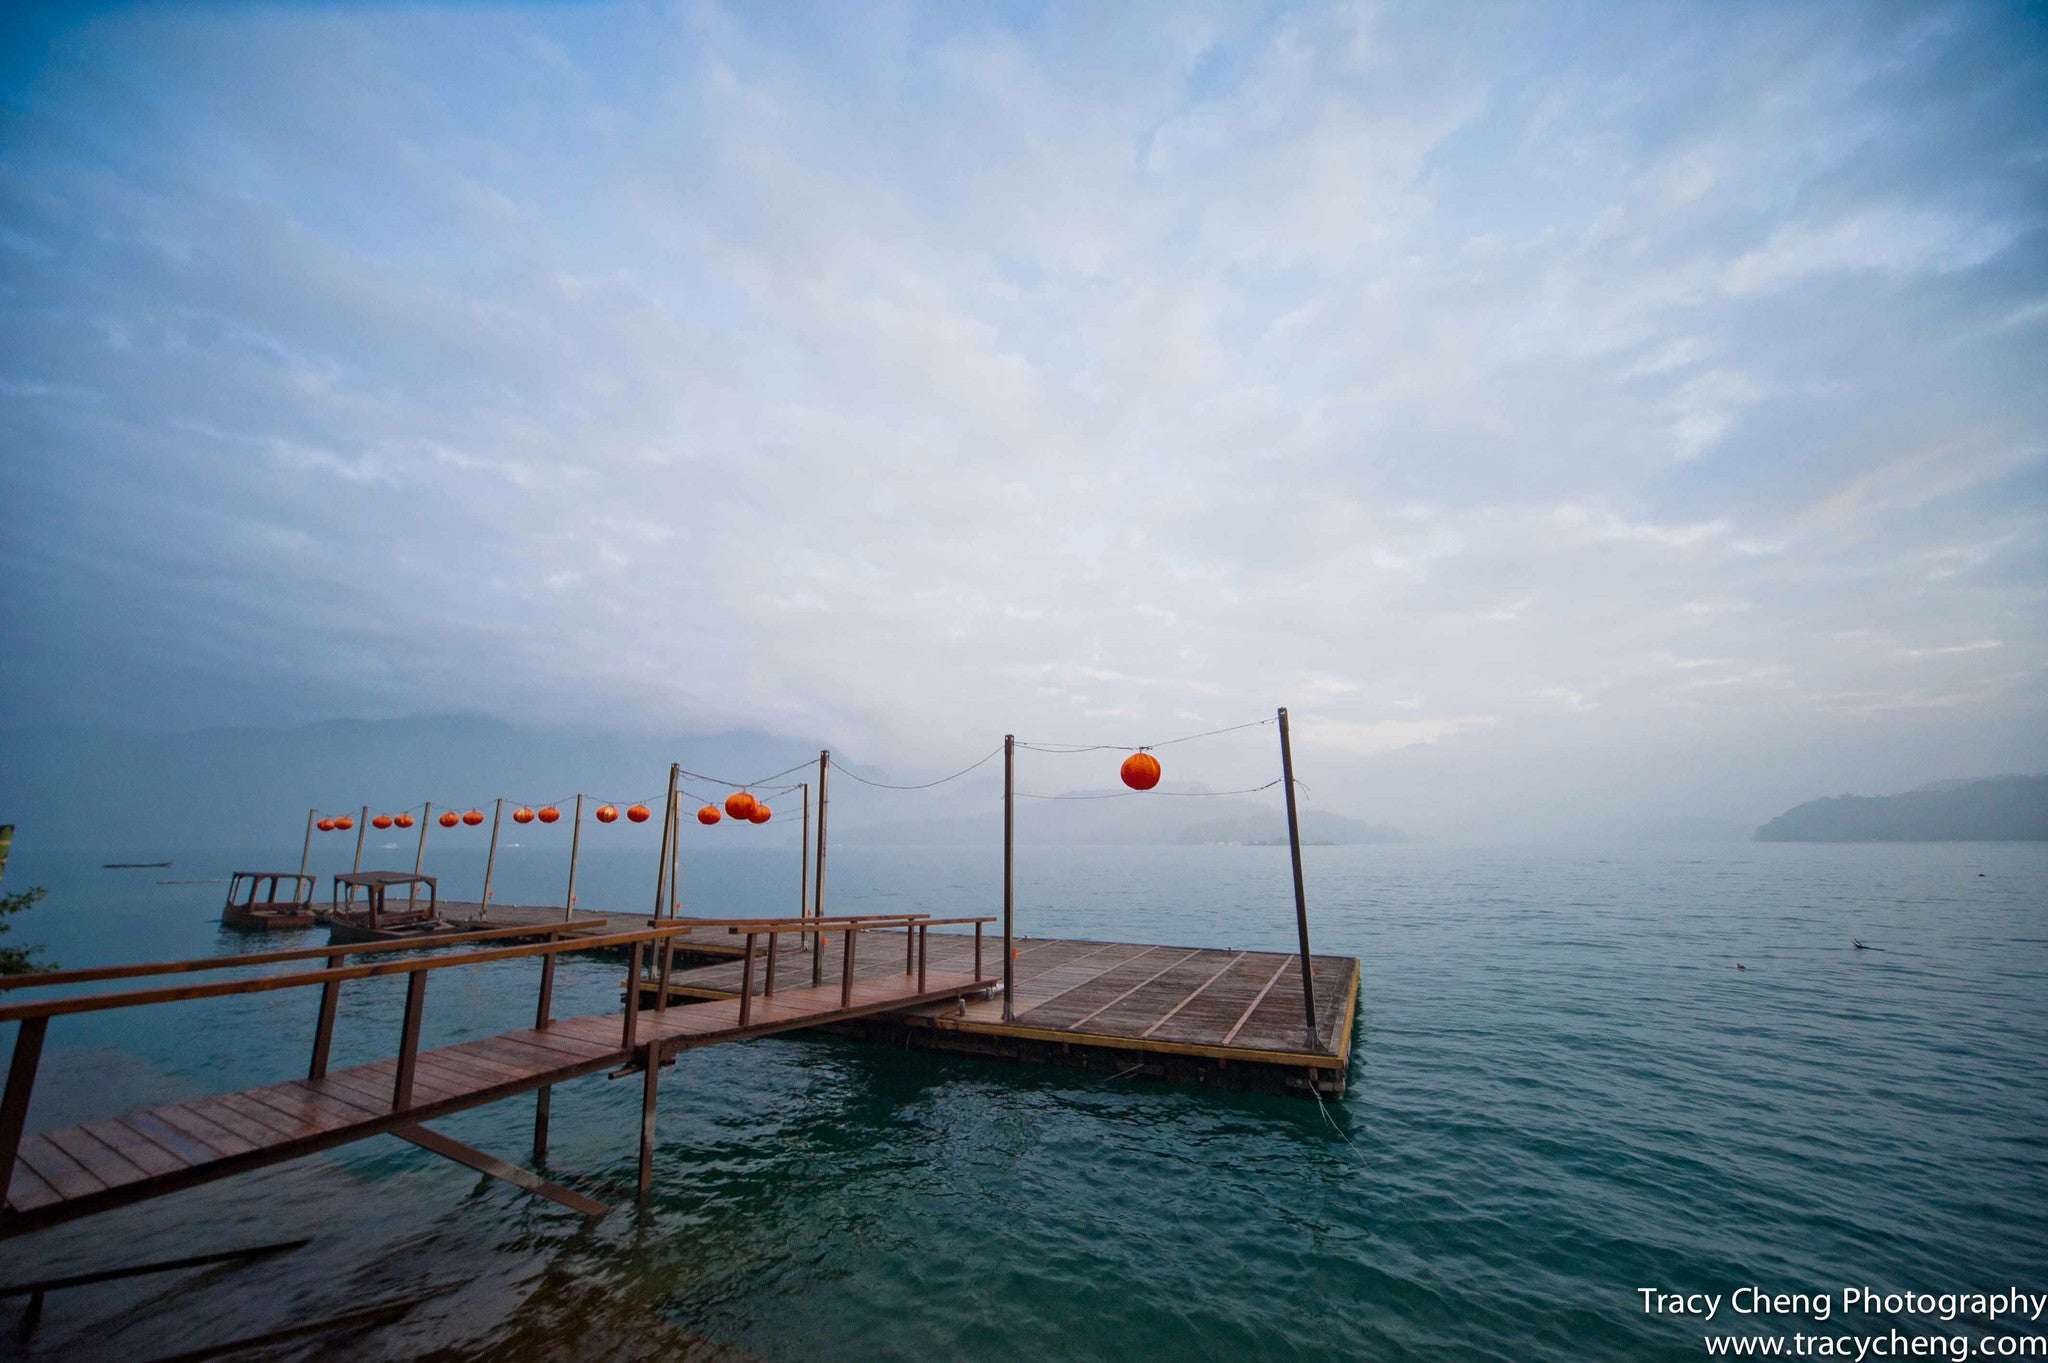 Sun Moon Lake, Taiwan - Photography Wall Art Print by Tracy Cheng Photography on Jetset Times SHOP